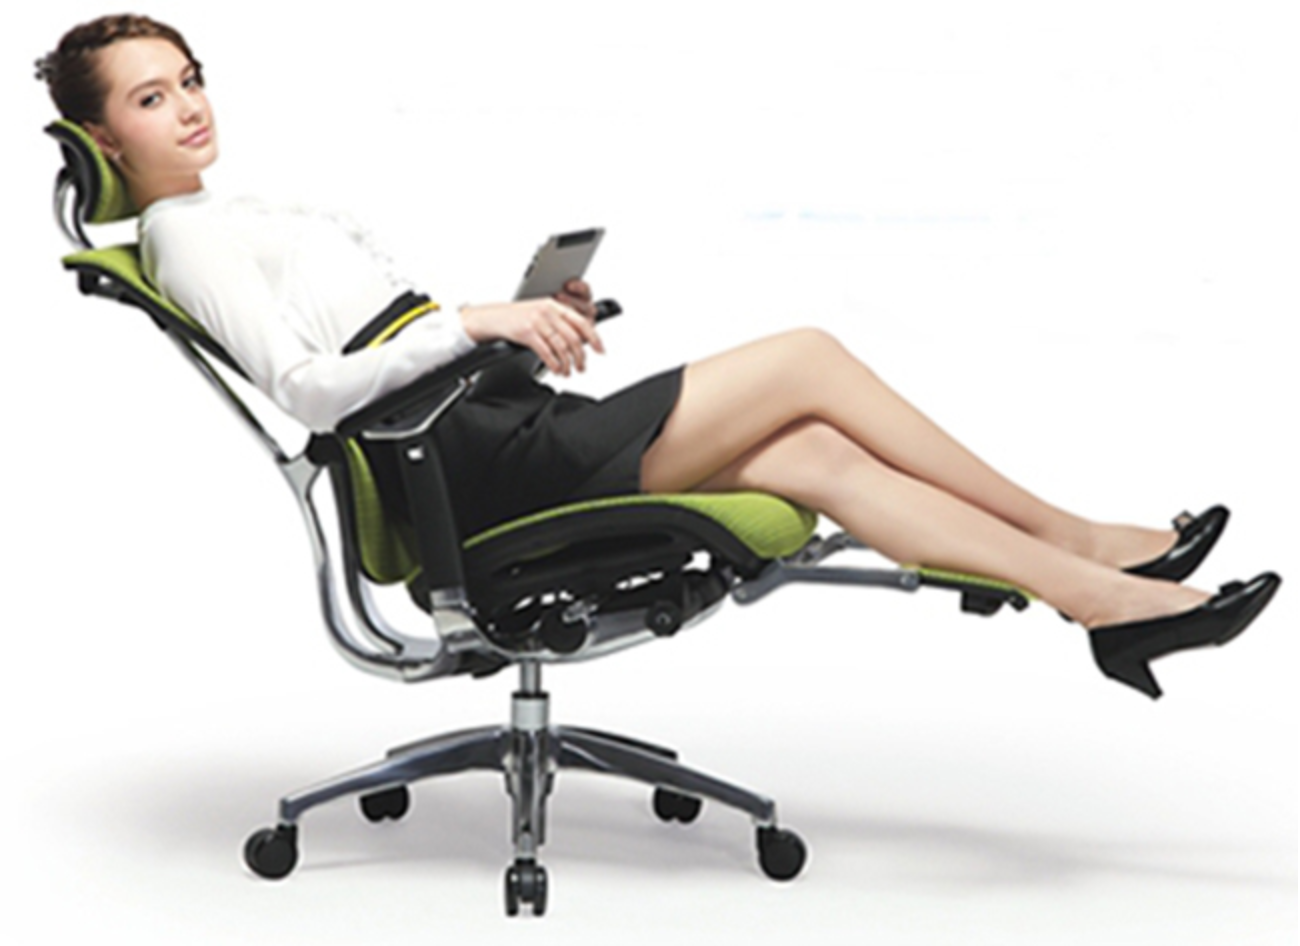 The office furniture blog at show for Sitting easy chairs